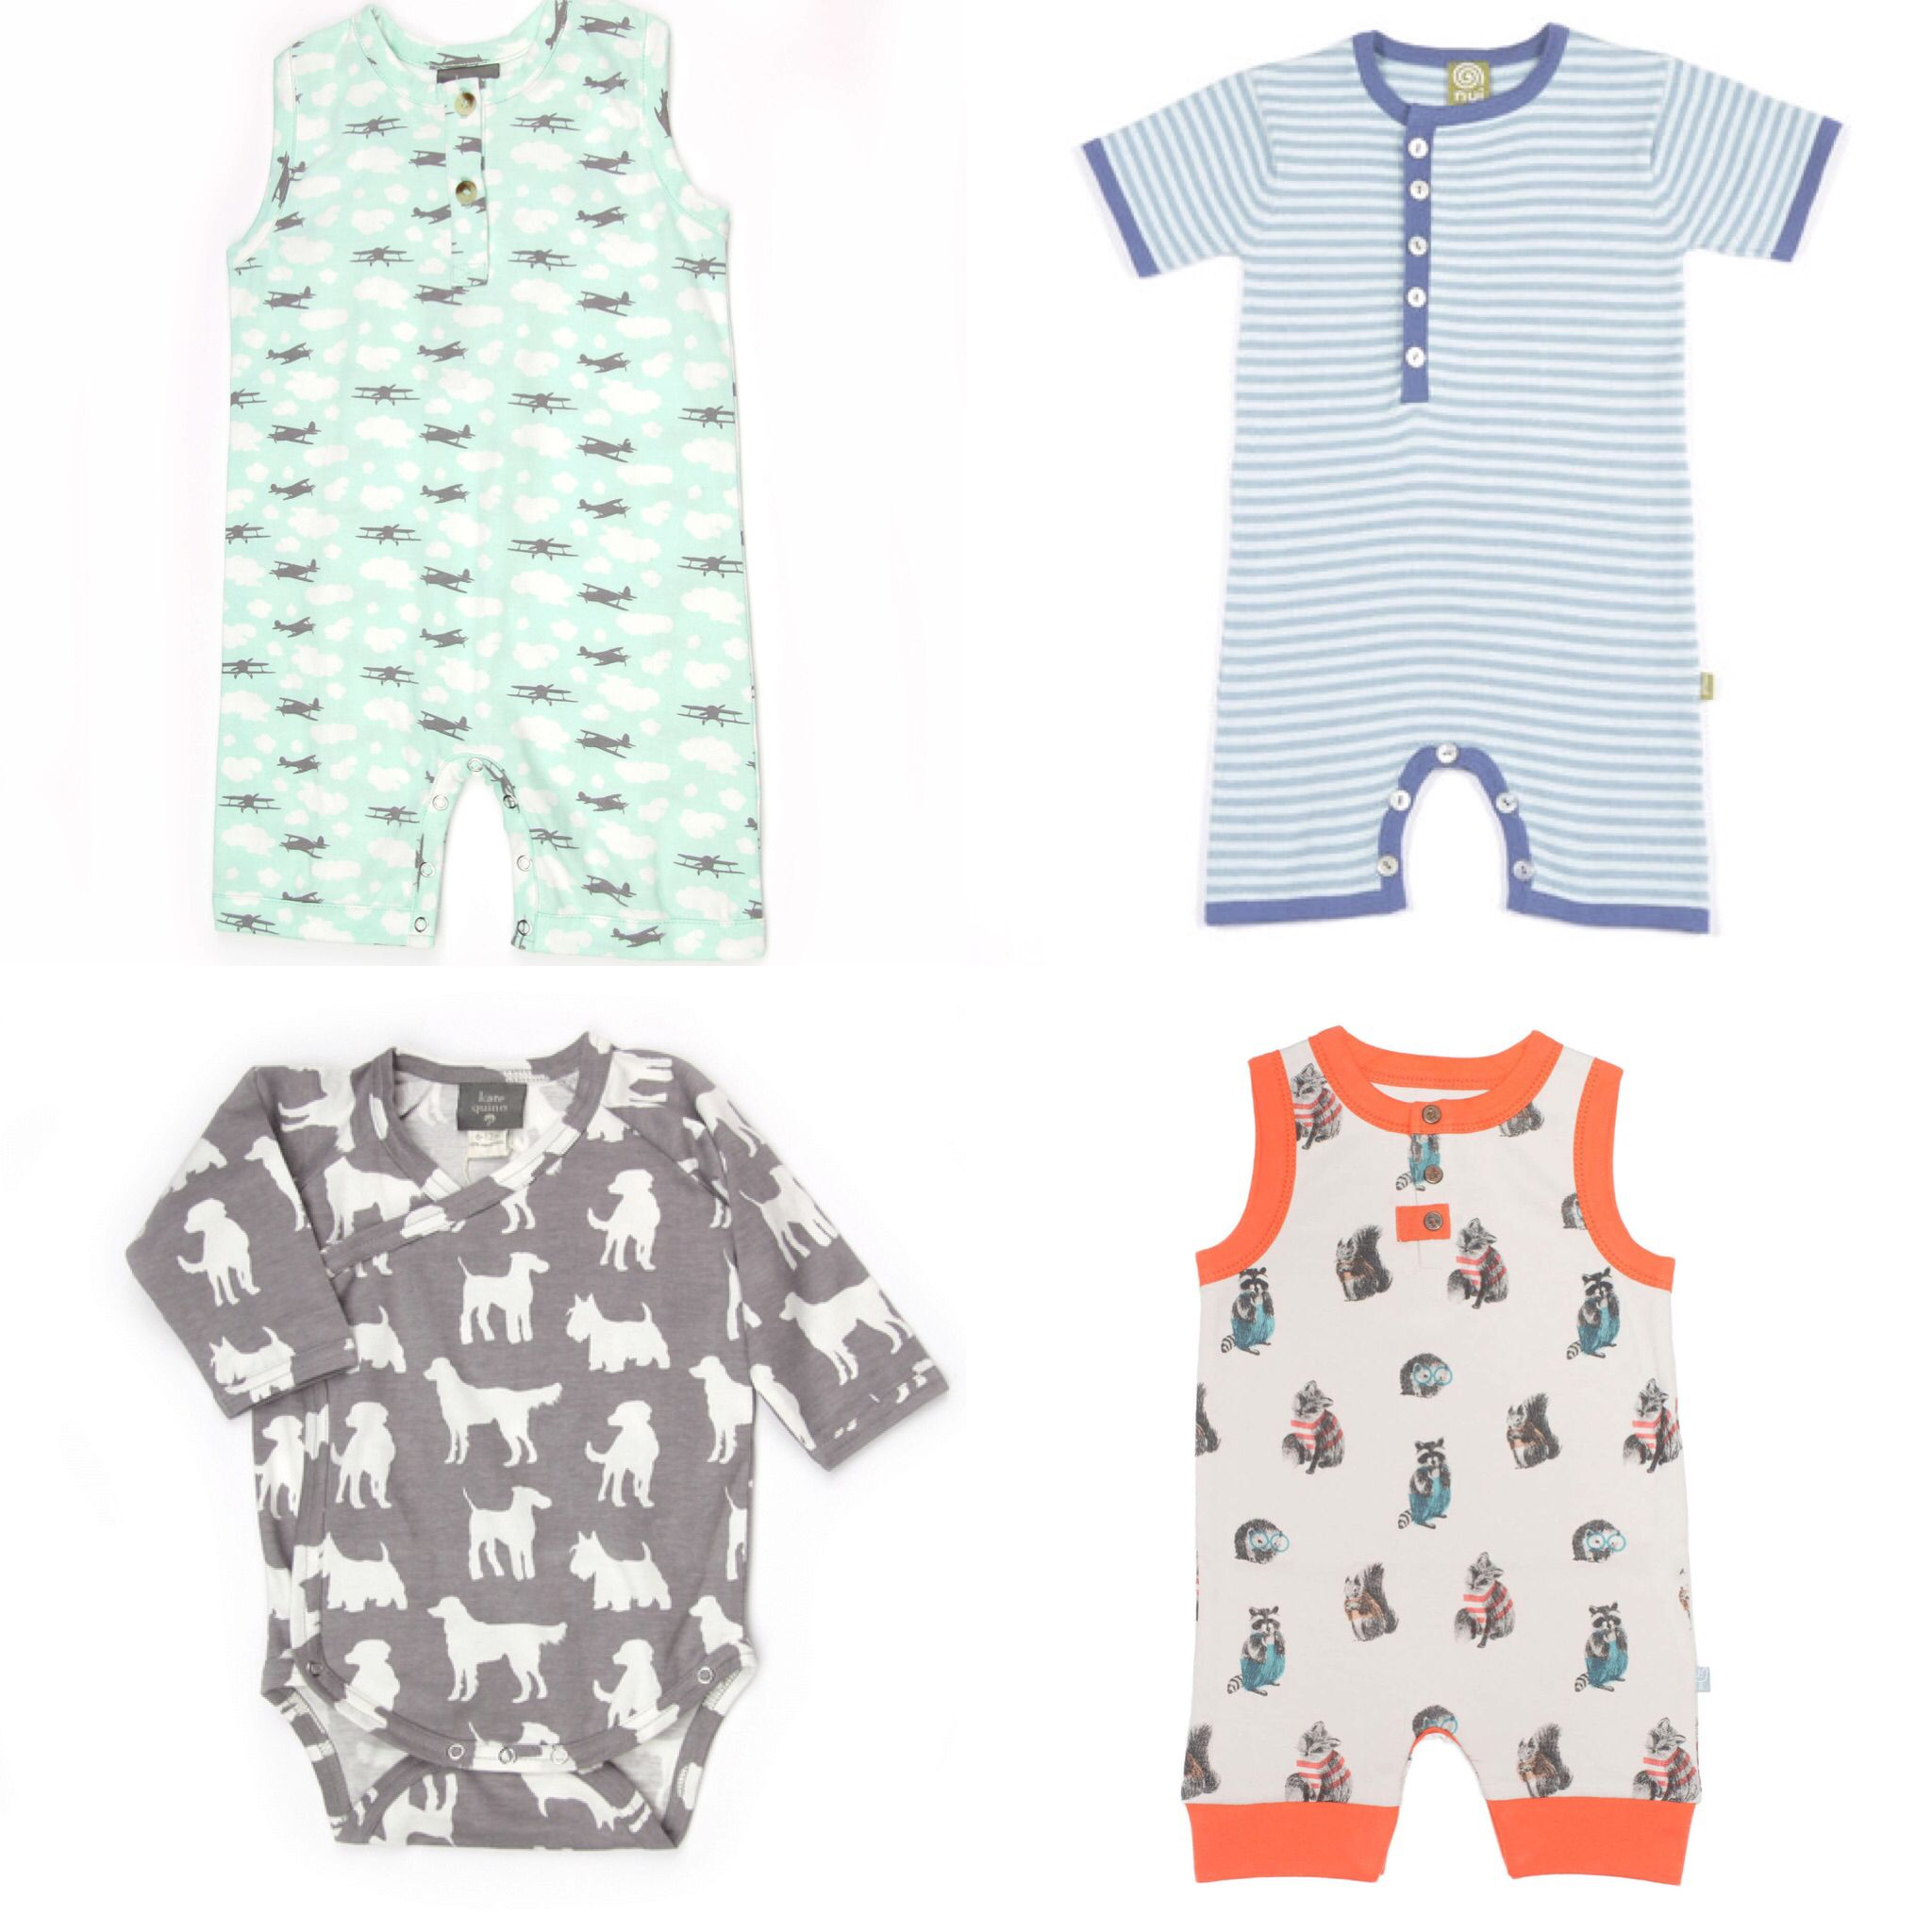 Designer Organic baby clothes newborn 24 months Use code Sweet